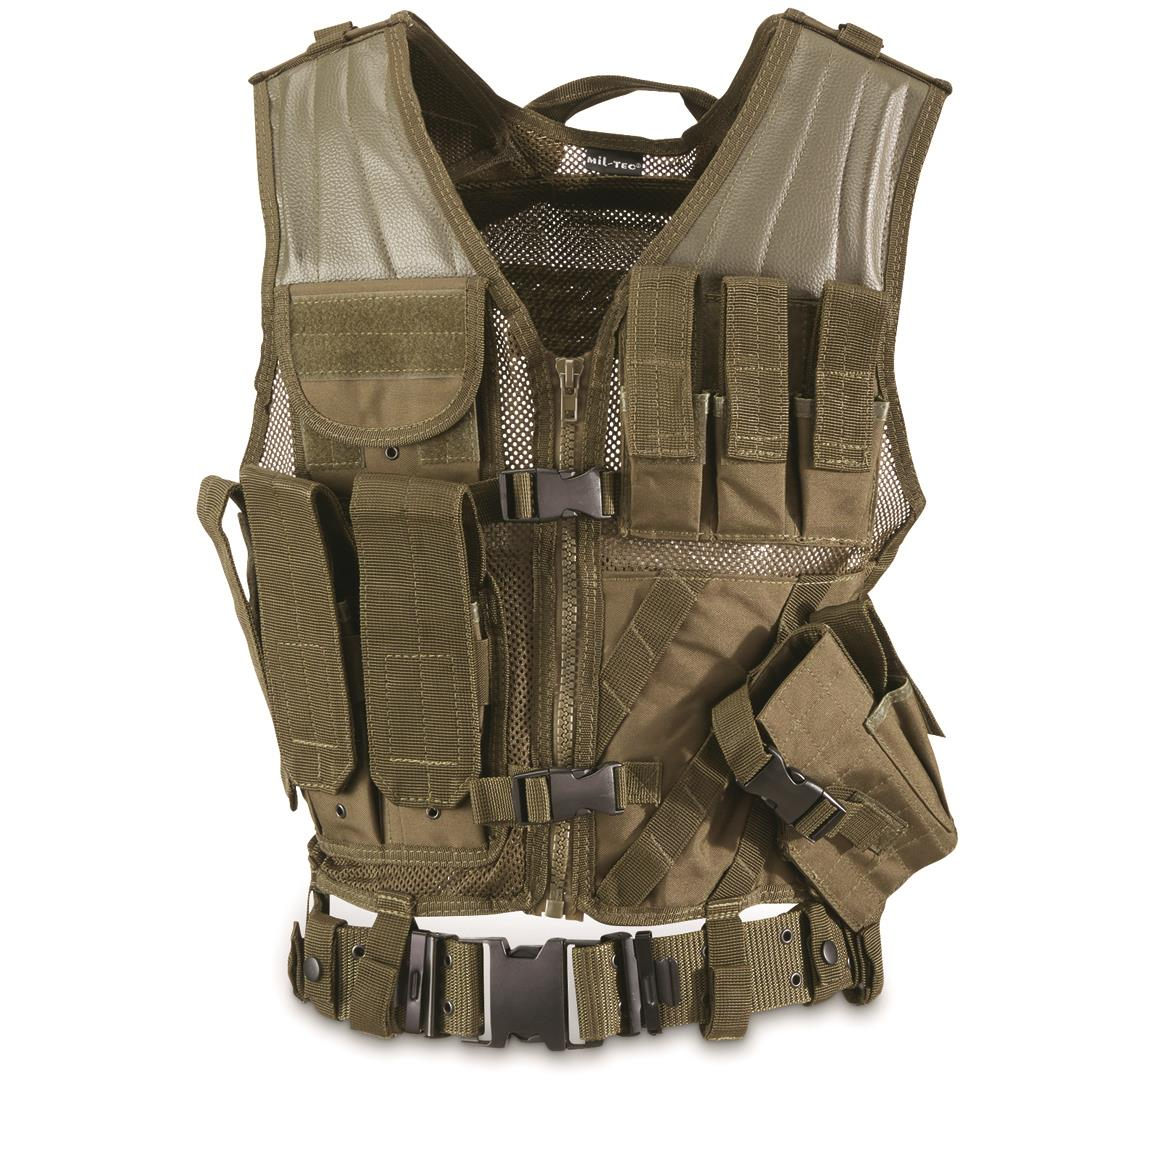 Mil-Tec Olive Drab Combat Vest with Belt